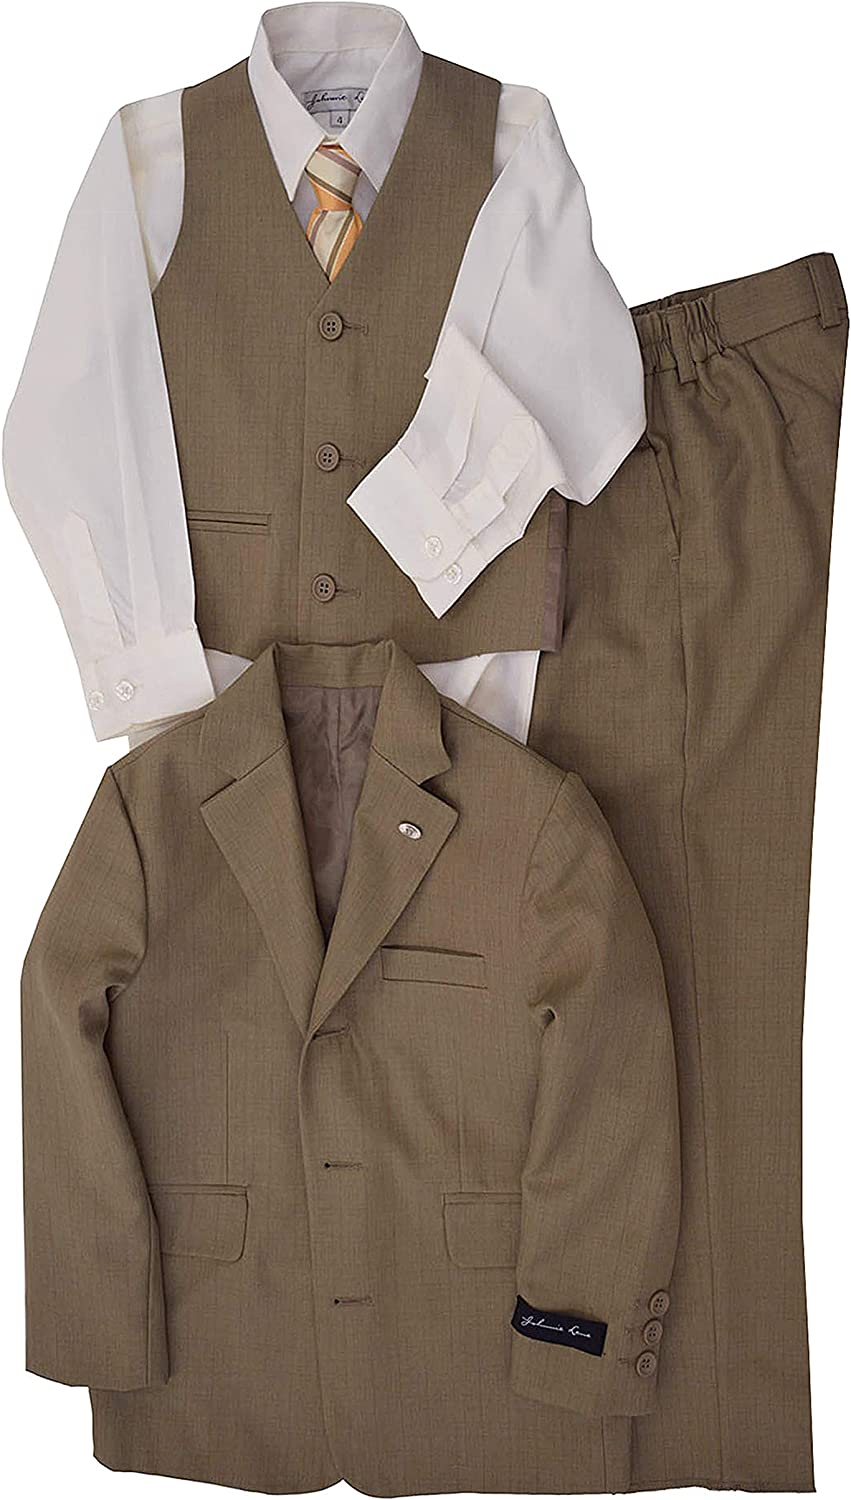 Johnnie Lene Natural Color Textured Suit from Baby Max 49% OFF for Set Spasm price Boys